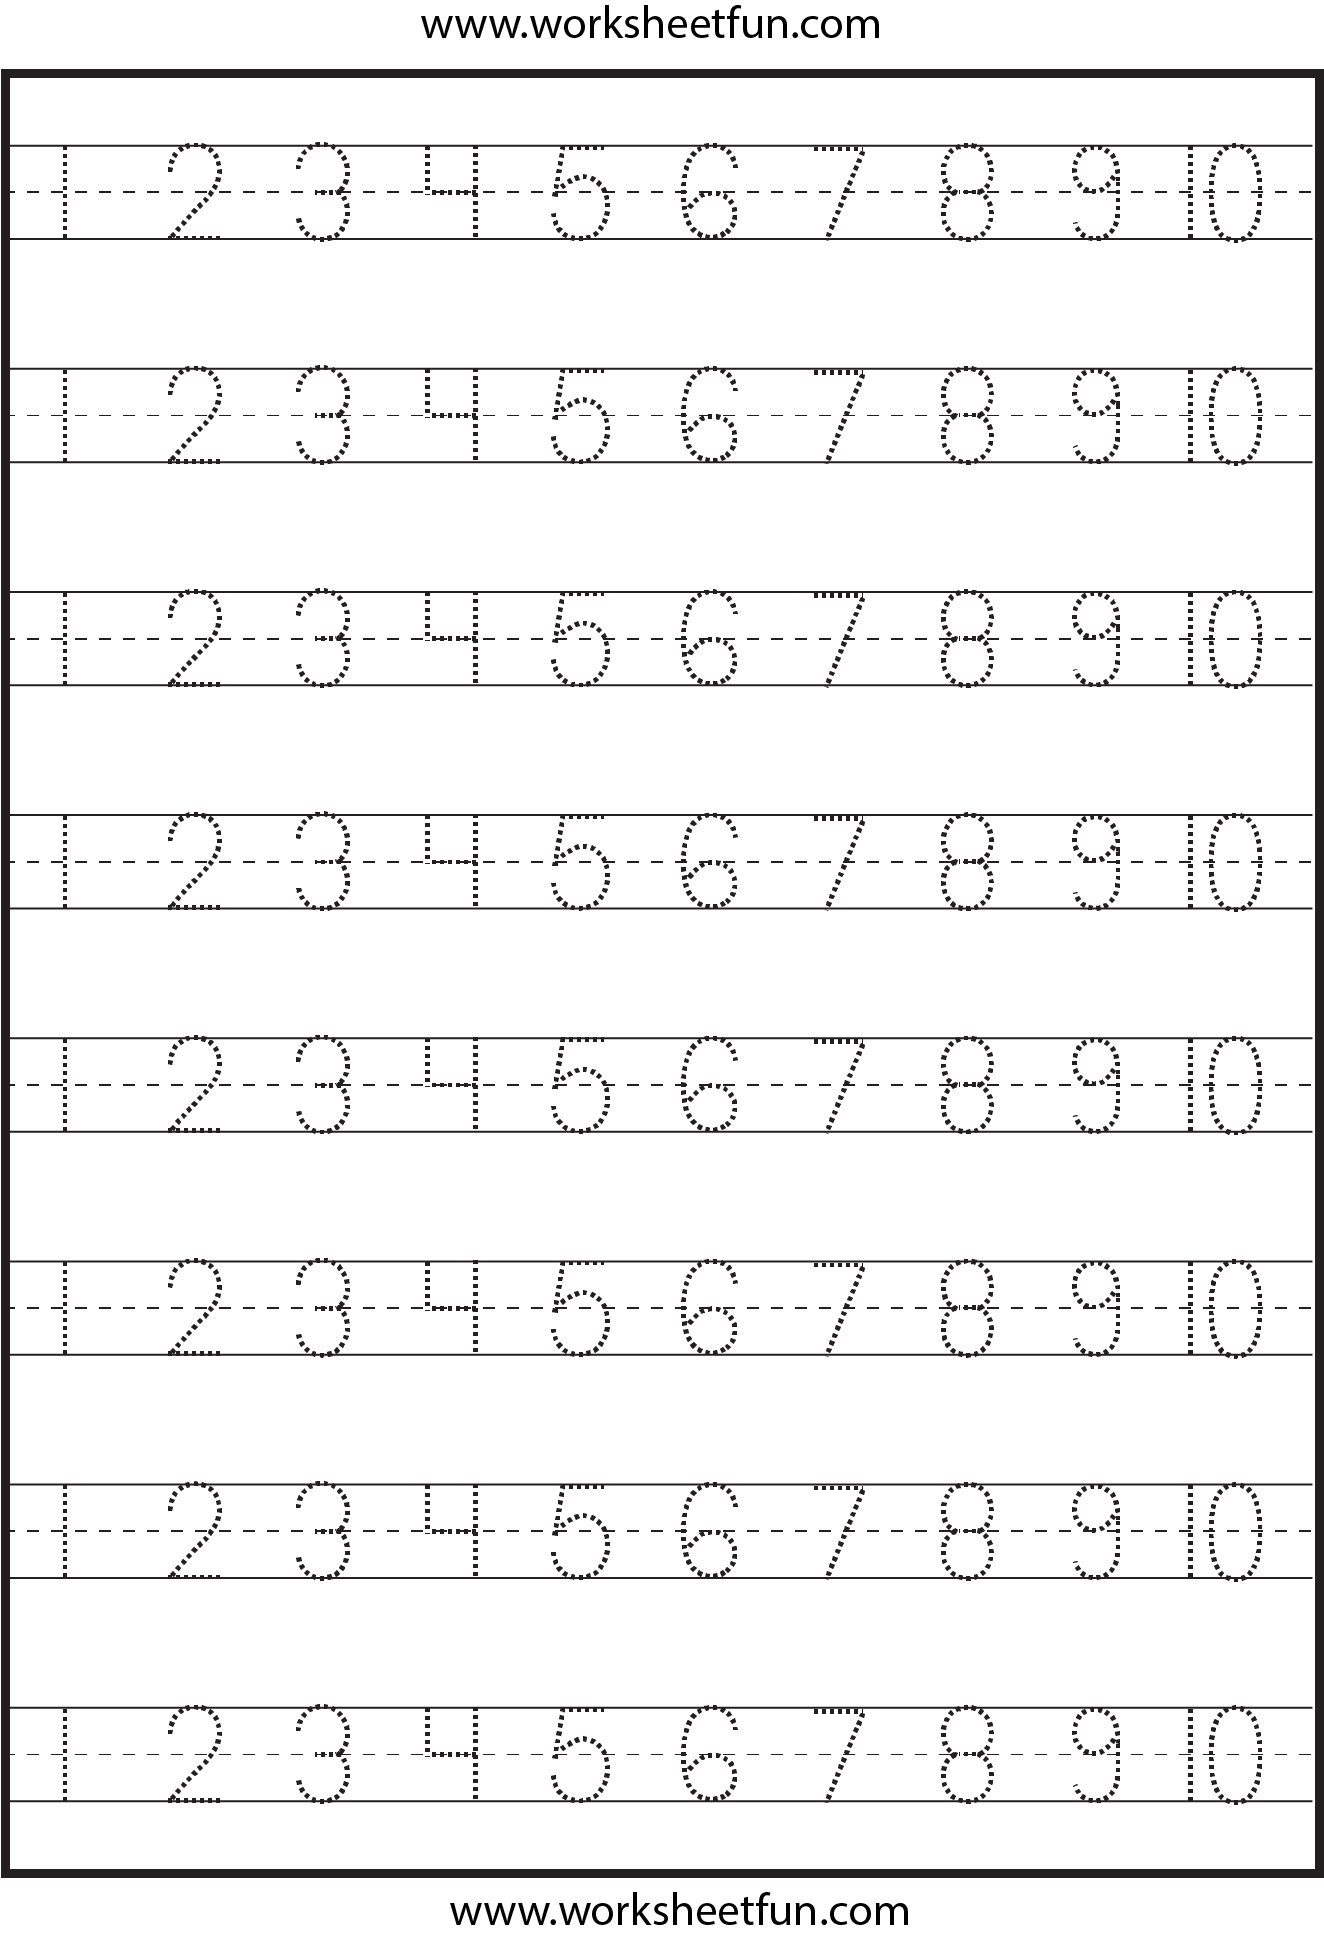 Worksheets Preschool Number Tracing Worksheets 1-20 number tracing 1 10 worksheet free printable worksheets tracing